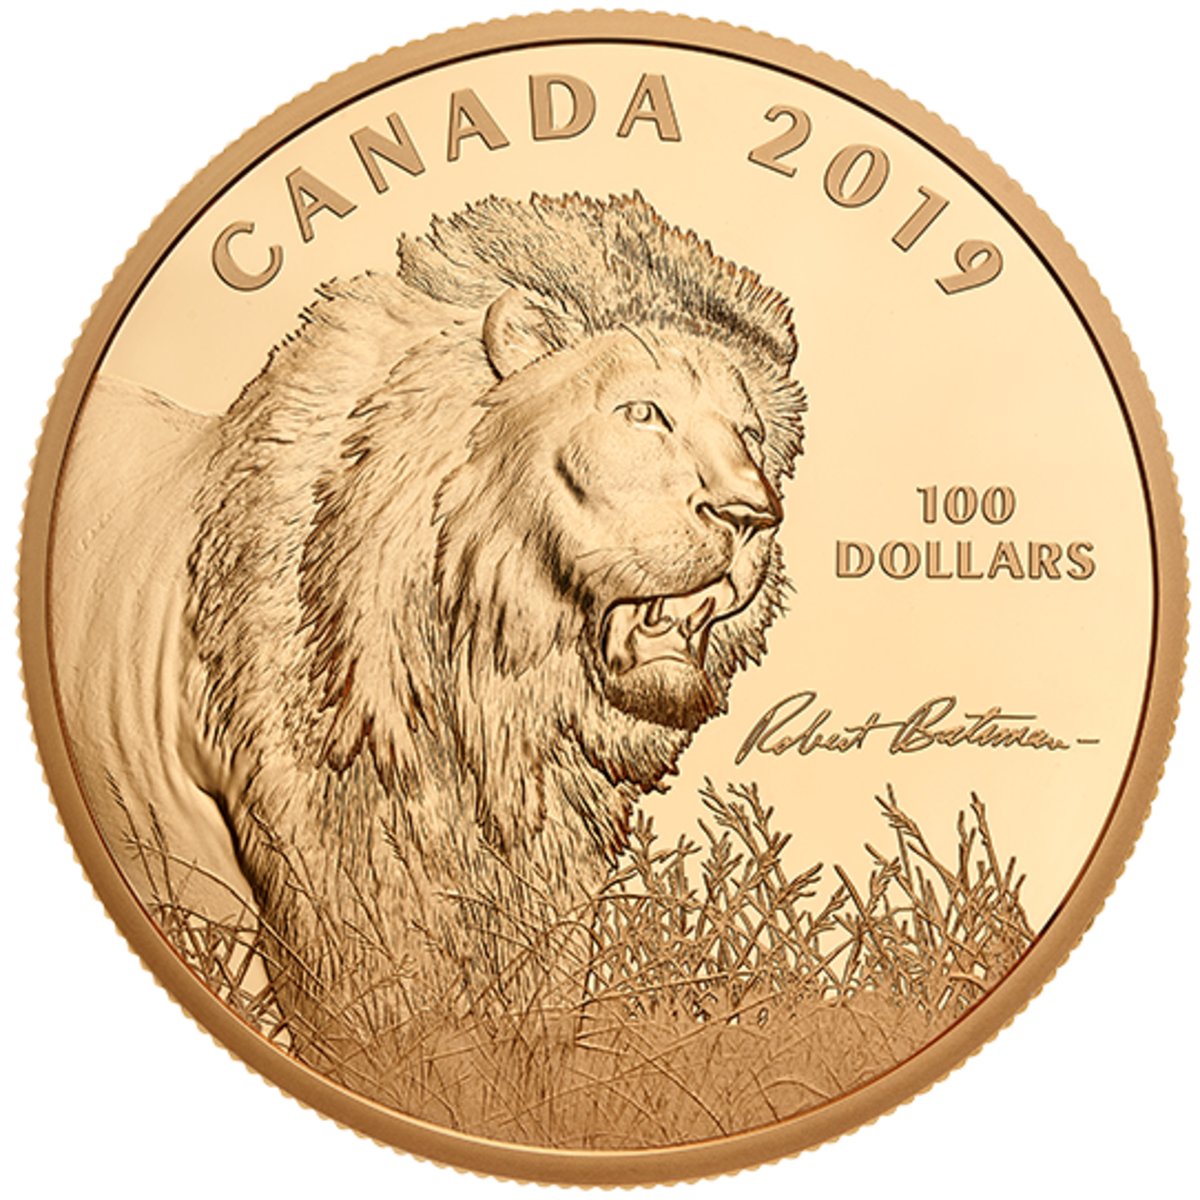 2019 Conservation Coin. Image courtesy of the Royal Canadian Mint.